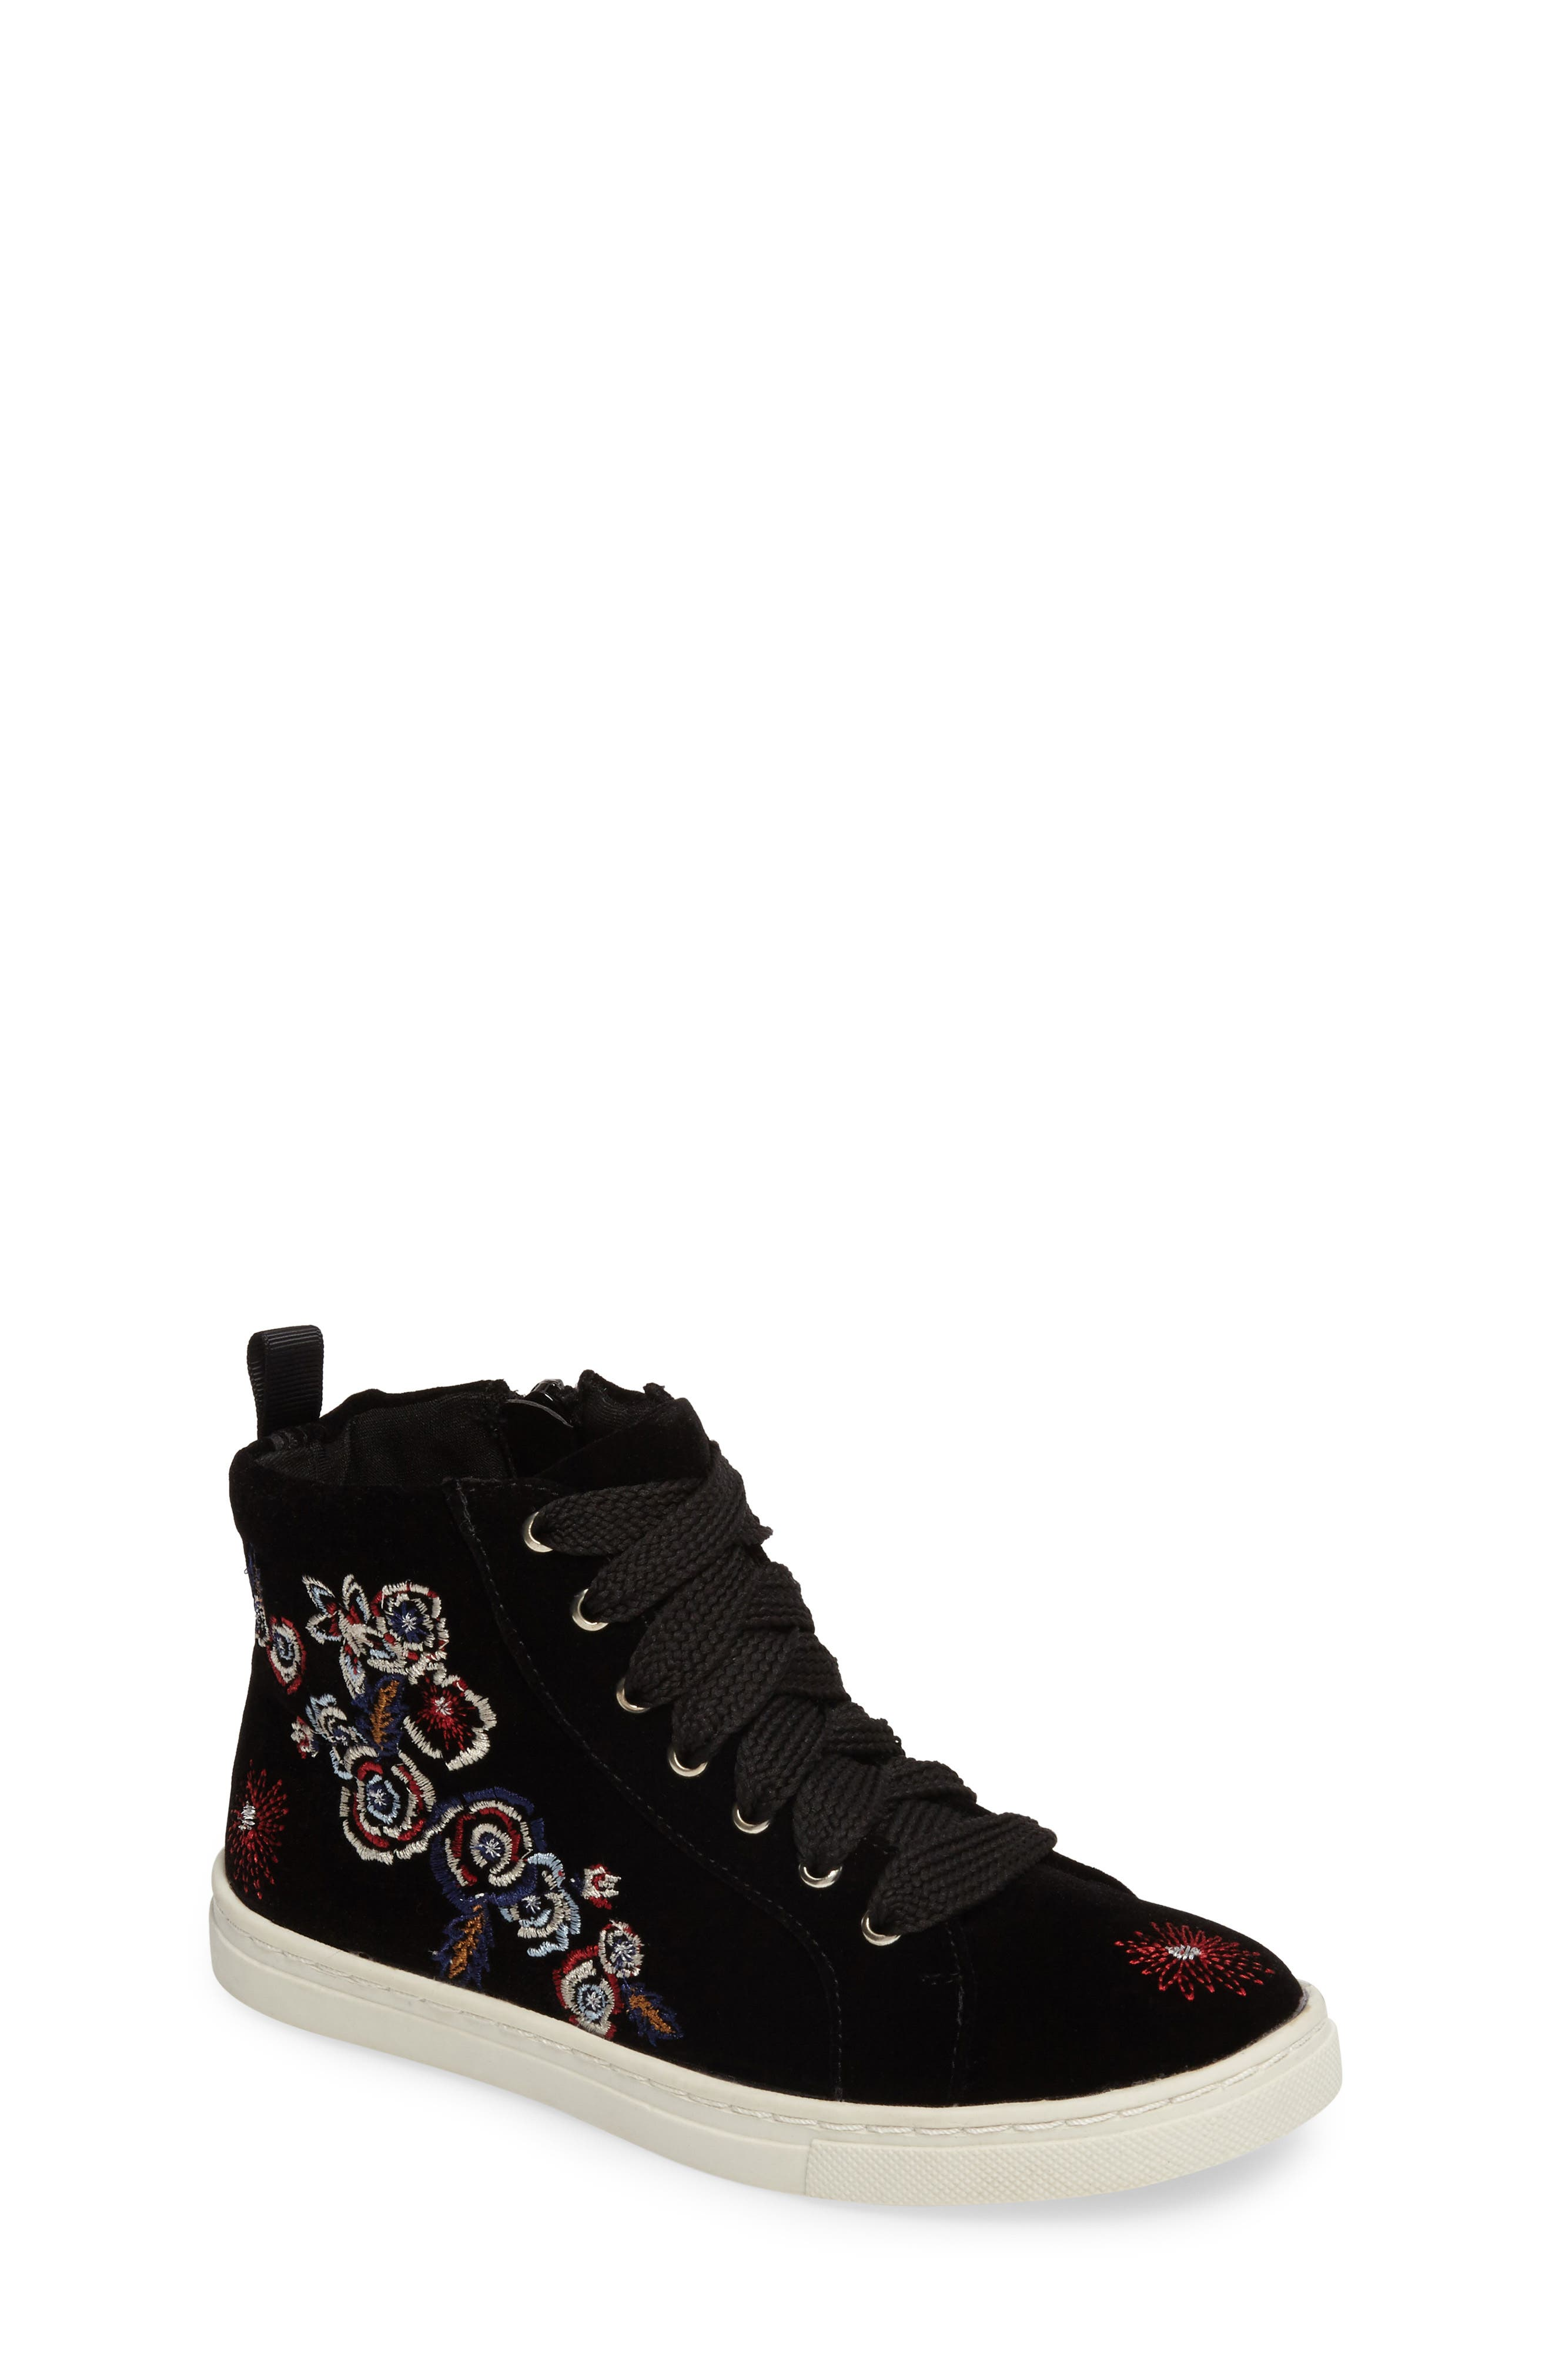 Zowen Embroidered High Top Sneaker,                         Main,                         color, Black Multi Floral